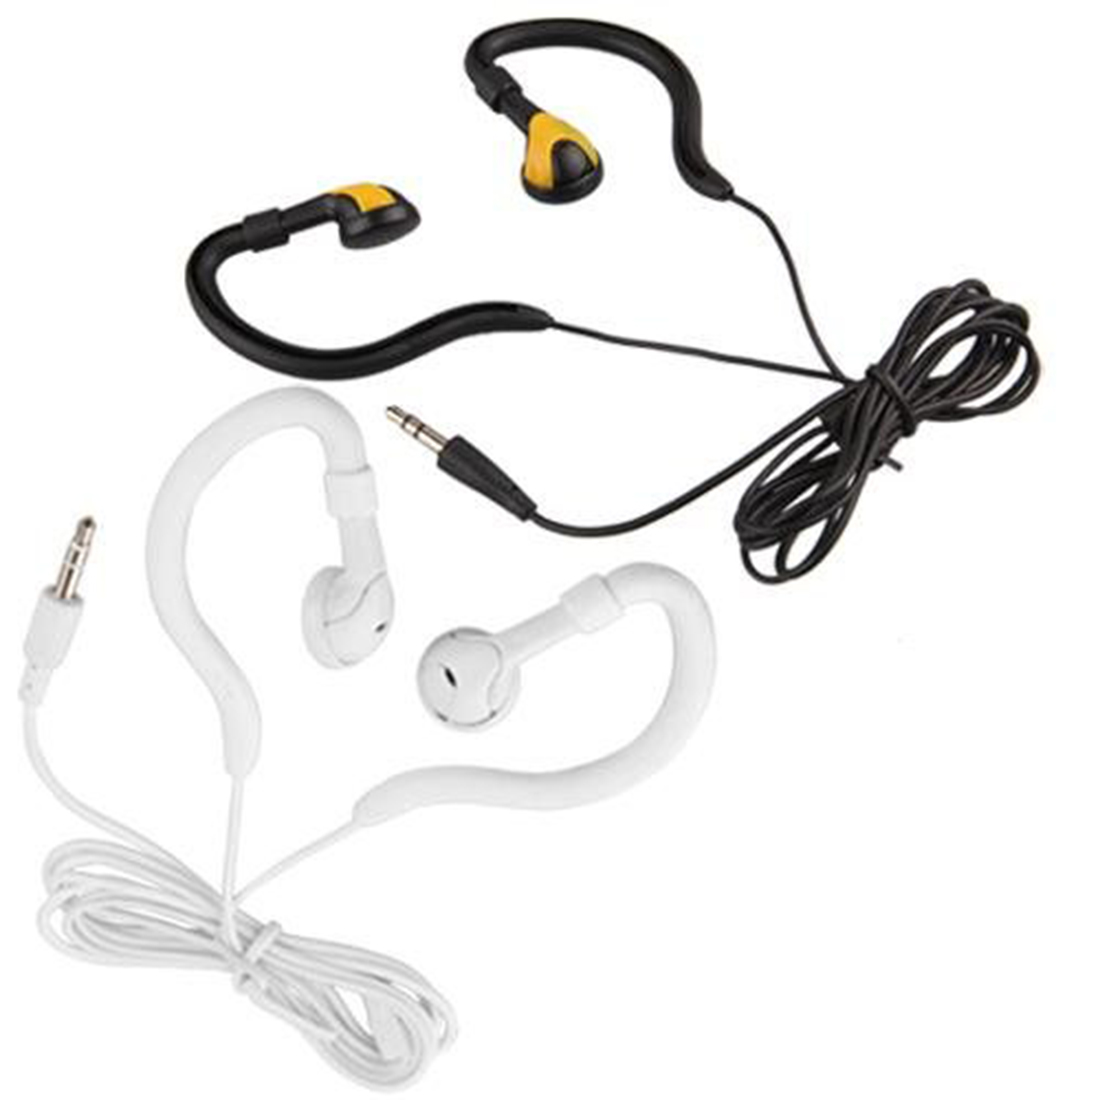 Marsnaska Running Sports Ear Hook 3.5mm para auriculares para MP3, - Audio y video portátil - foto 1